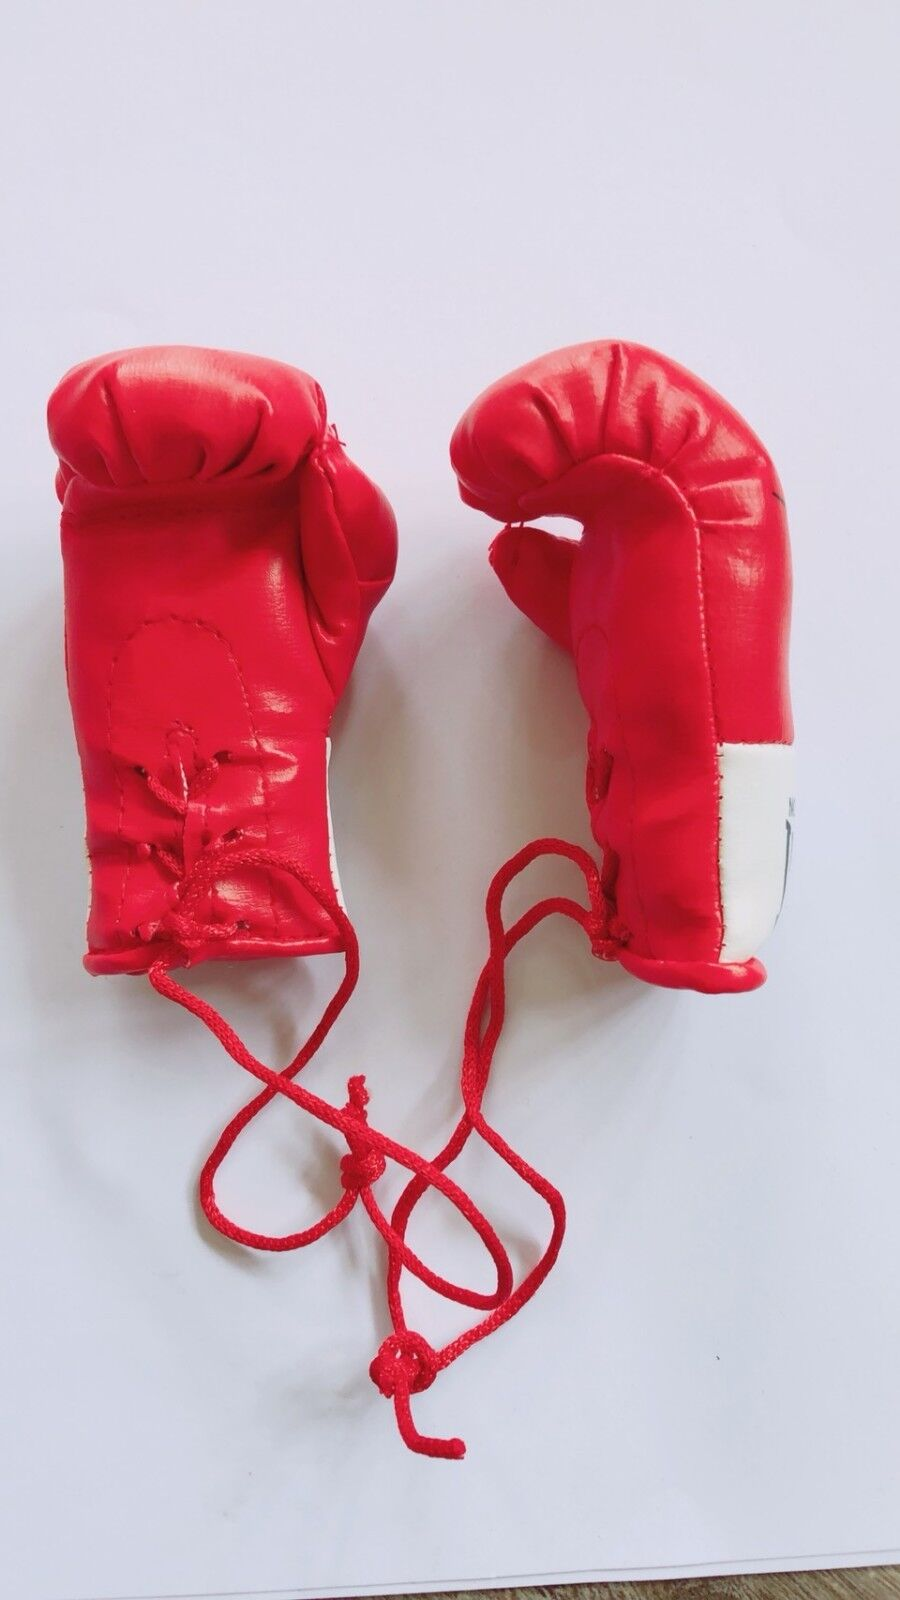 1910-1930 Antique Style Leather Boxing Gloves